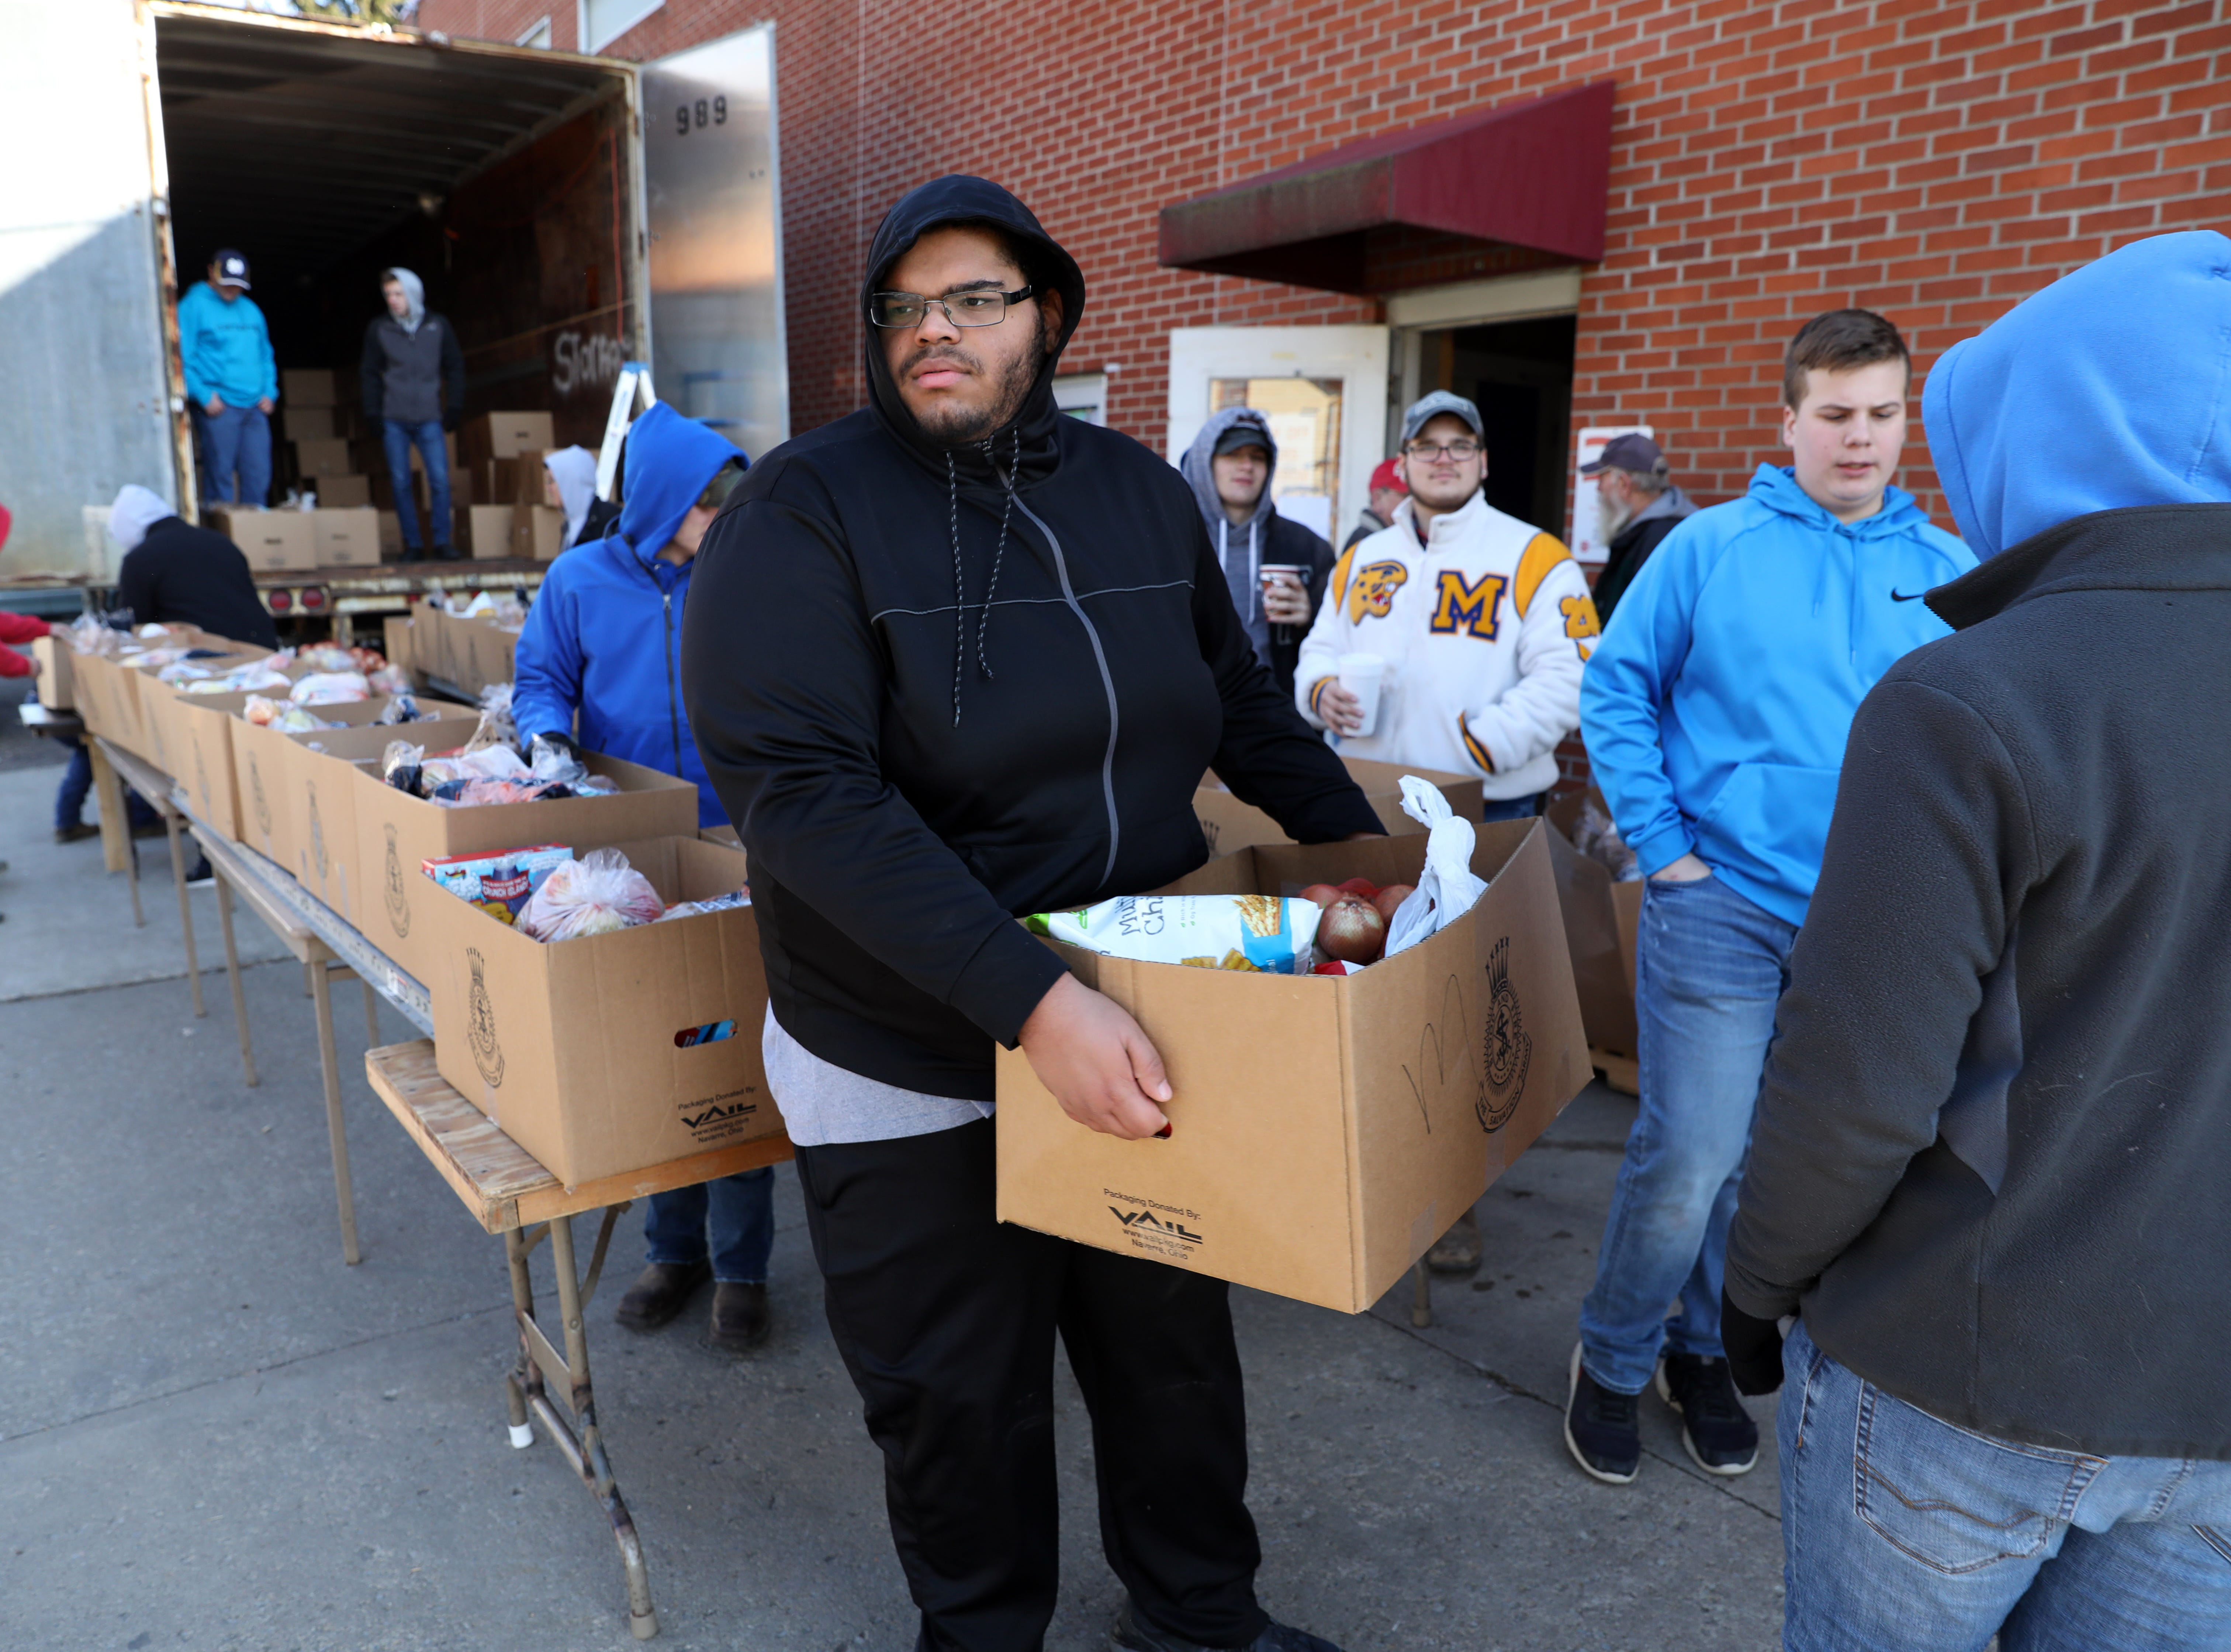 Maysville High School football player Jakob Plummer carries a box of food while volunteer at the Salvation Army on Tuesday.